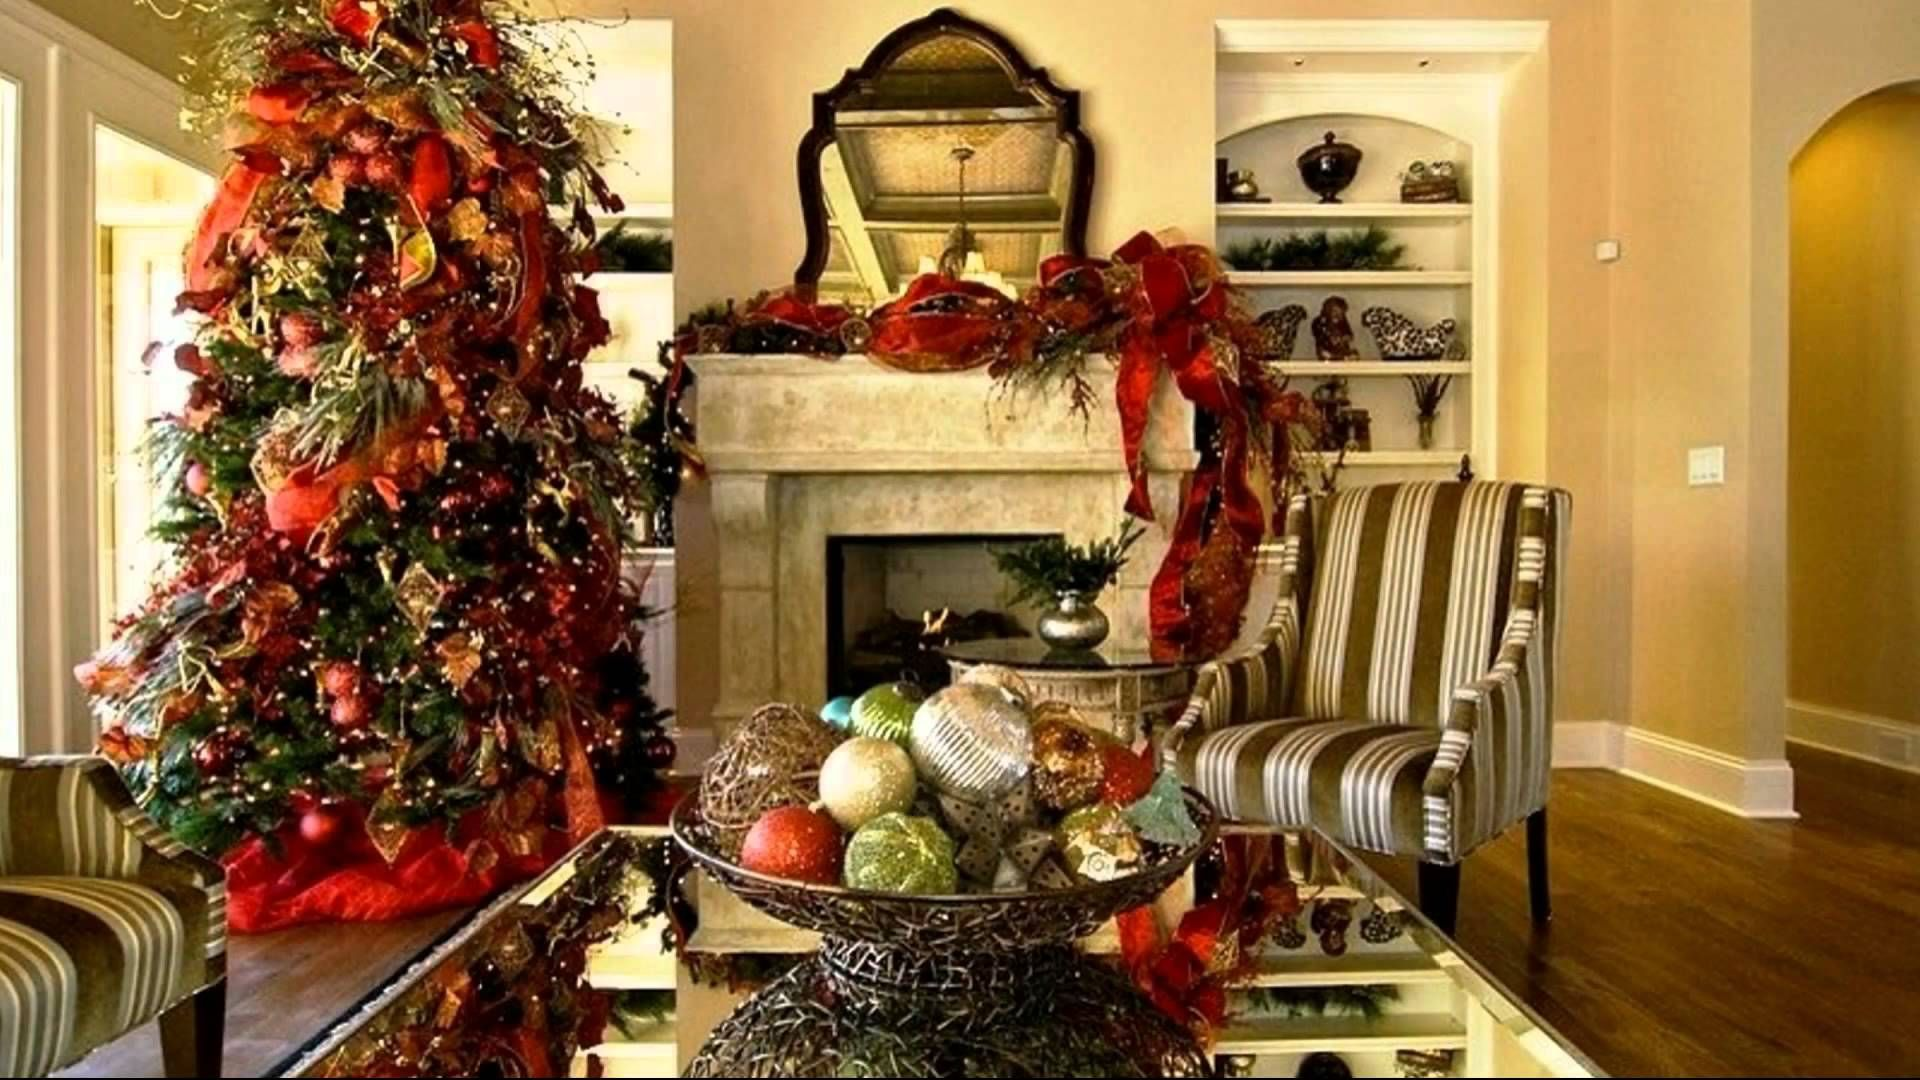 Wonderful christmas interior decorating ideas easy and cheap home decor cheapest way to furnish  house for affordable also rh pinterest